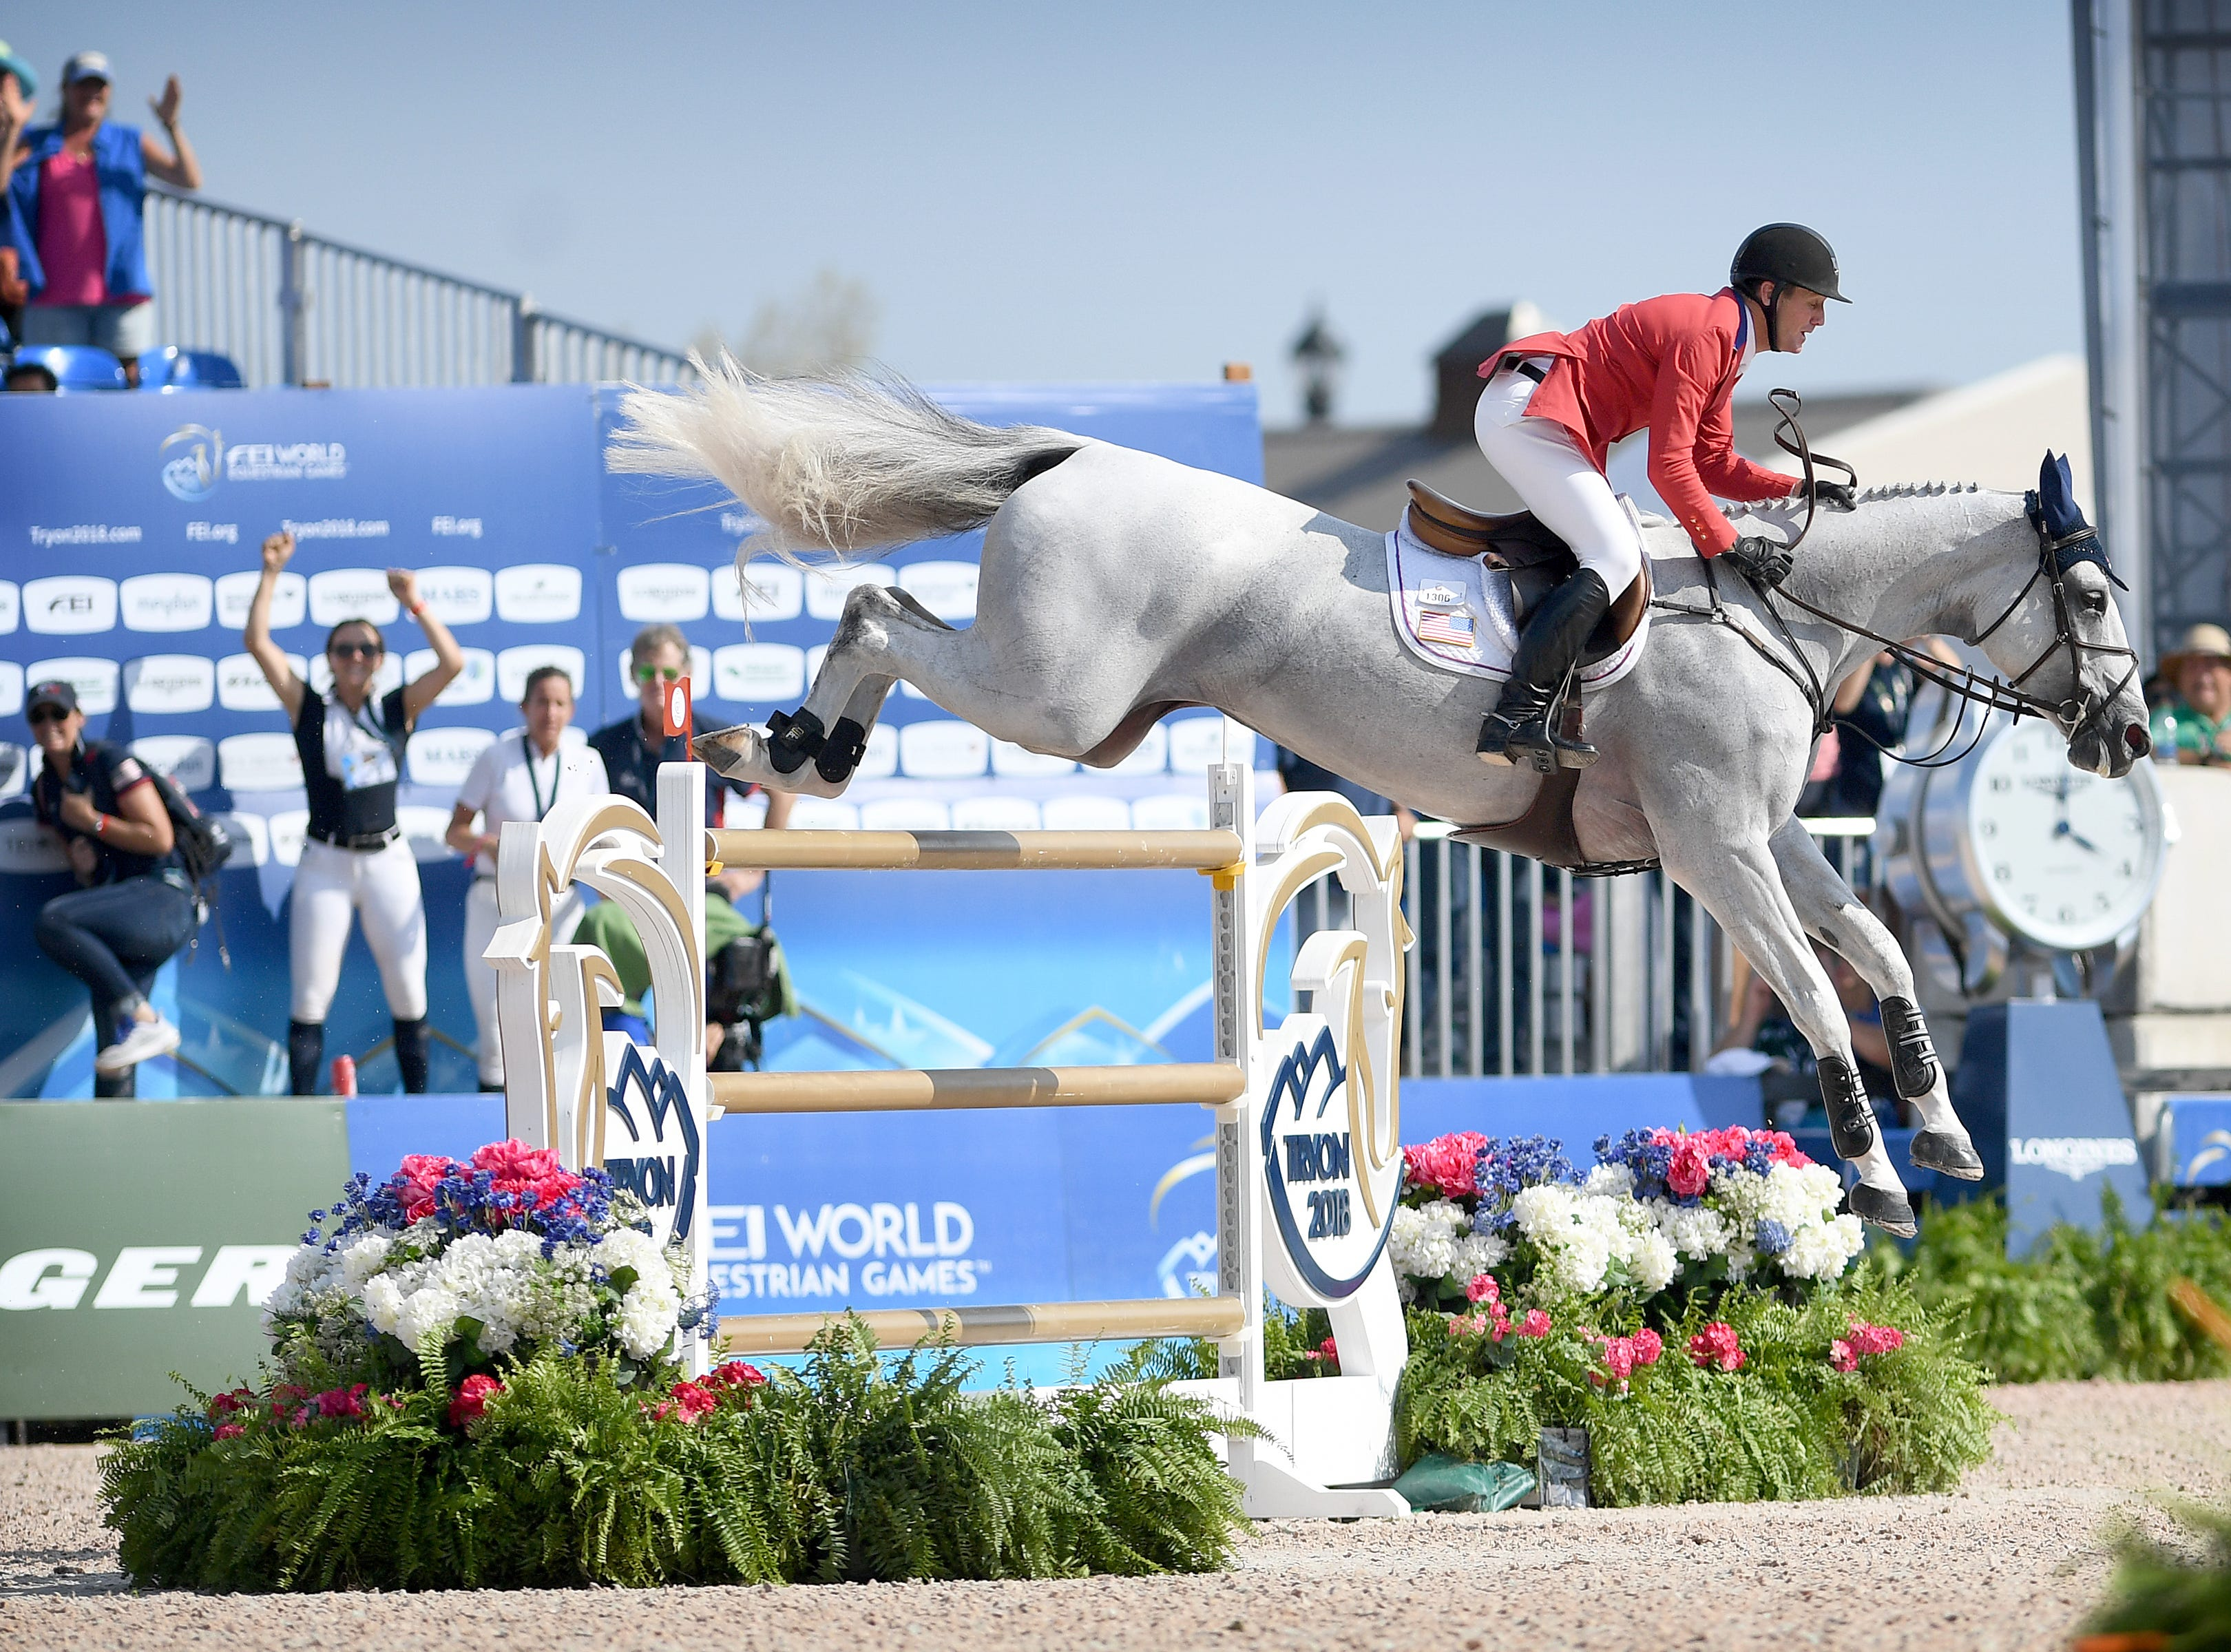 American McLain Ward leaps the final jump in the group jumping competition on horse, Clinta, during the FEI World Equestrian Games at the Tryon International Equestrian Center on Sept. 20, 2018.